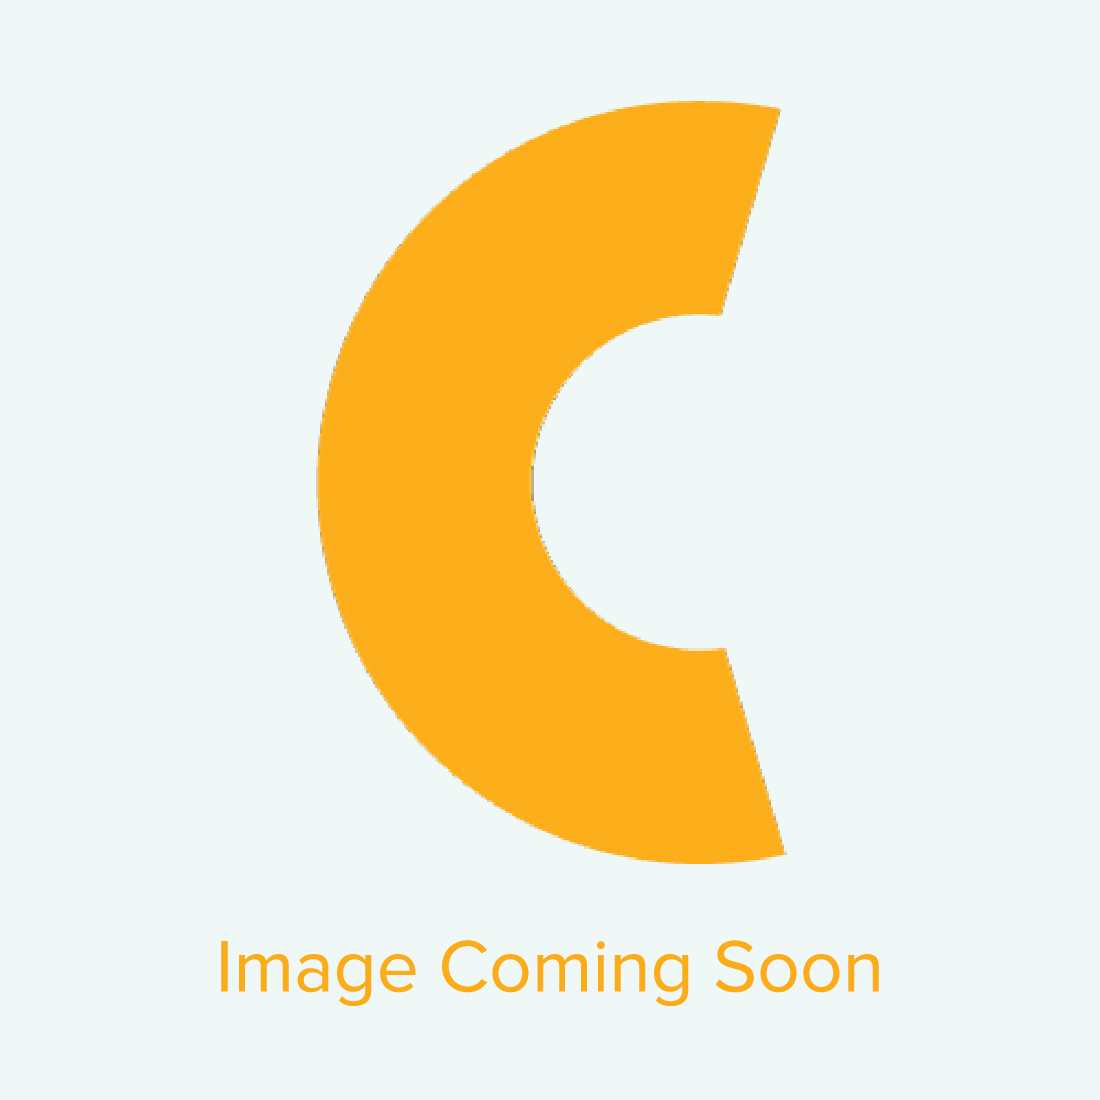 FOREVER TransferRip Color Profile White Control Rasterization Software 5C Edit